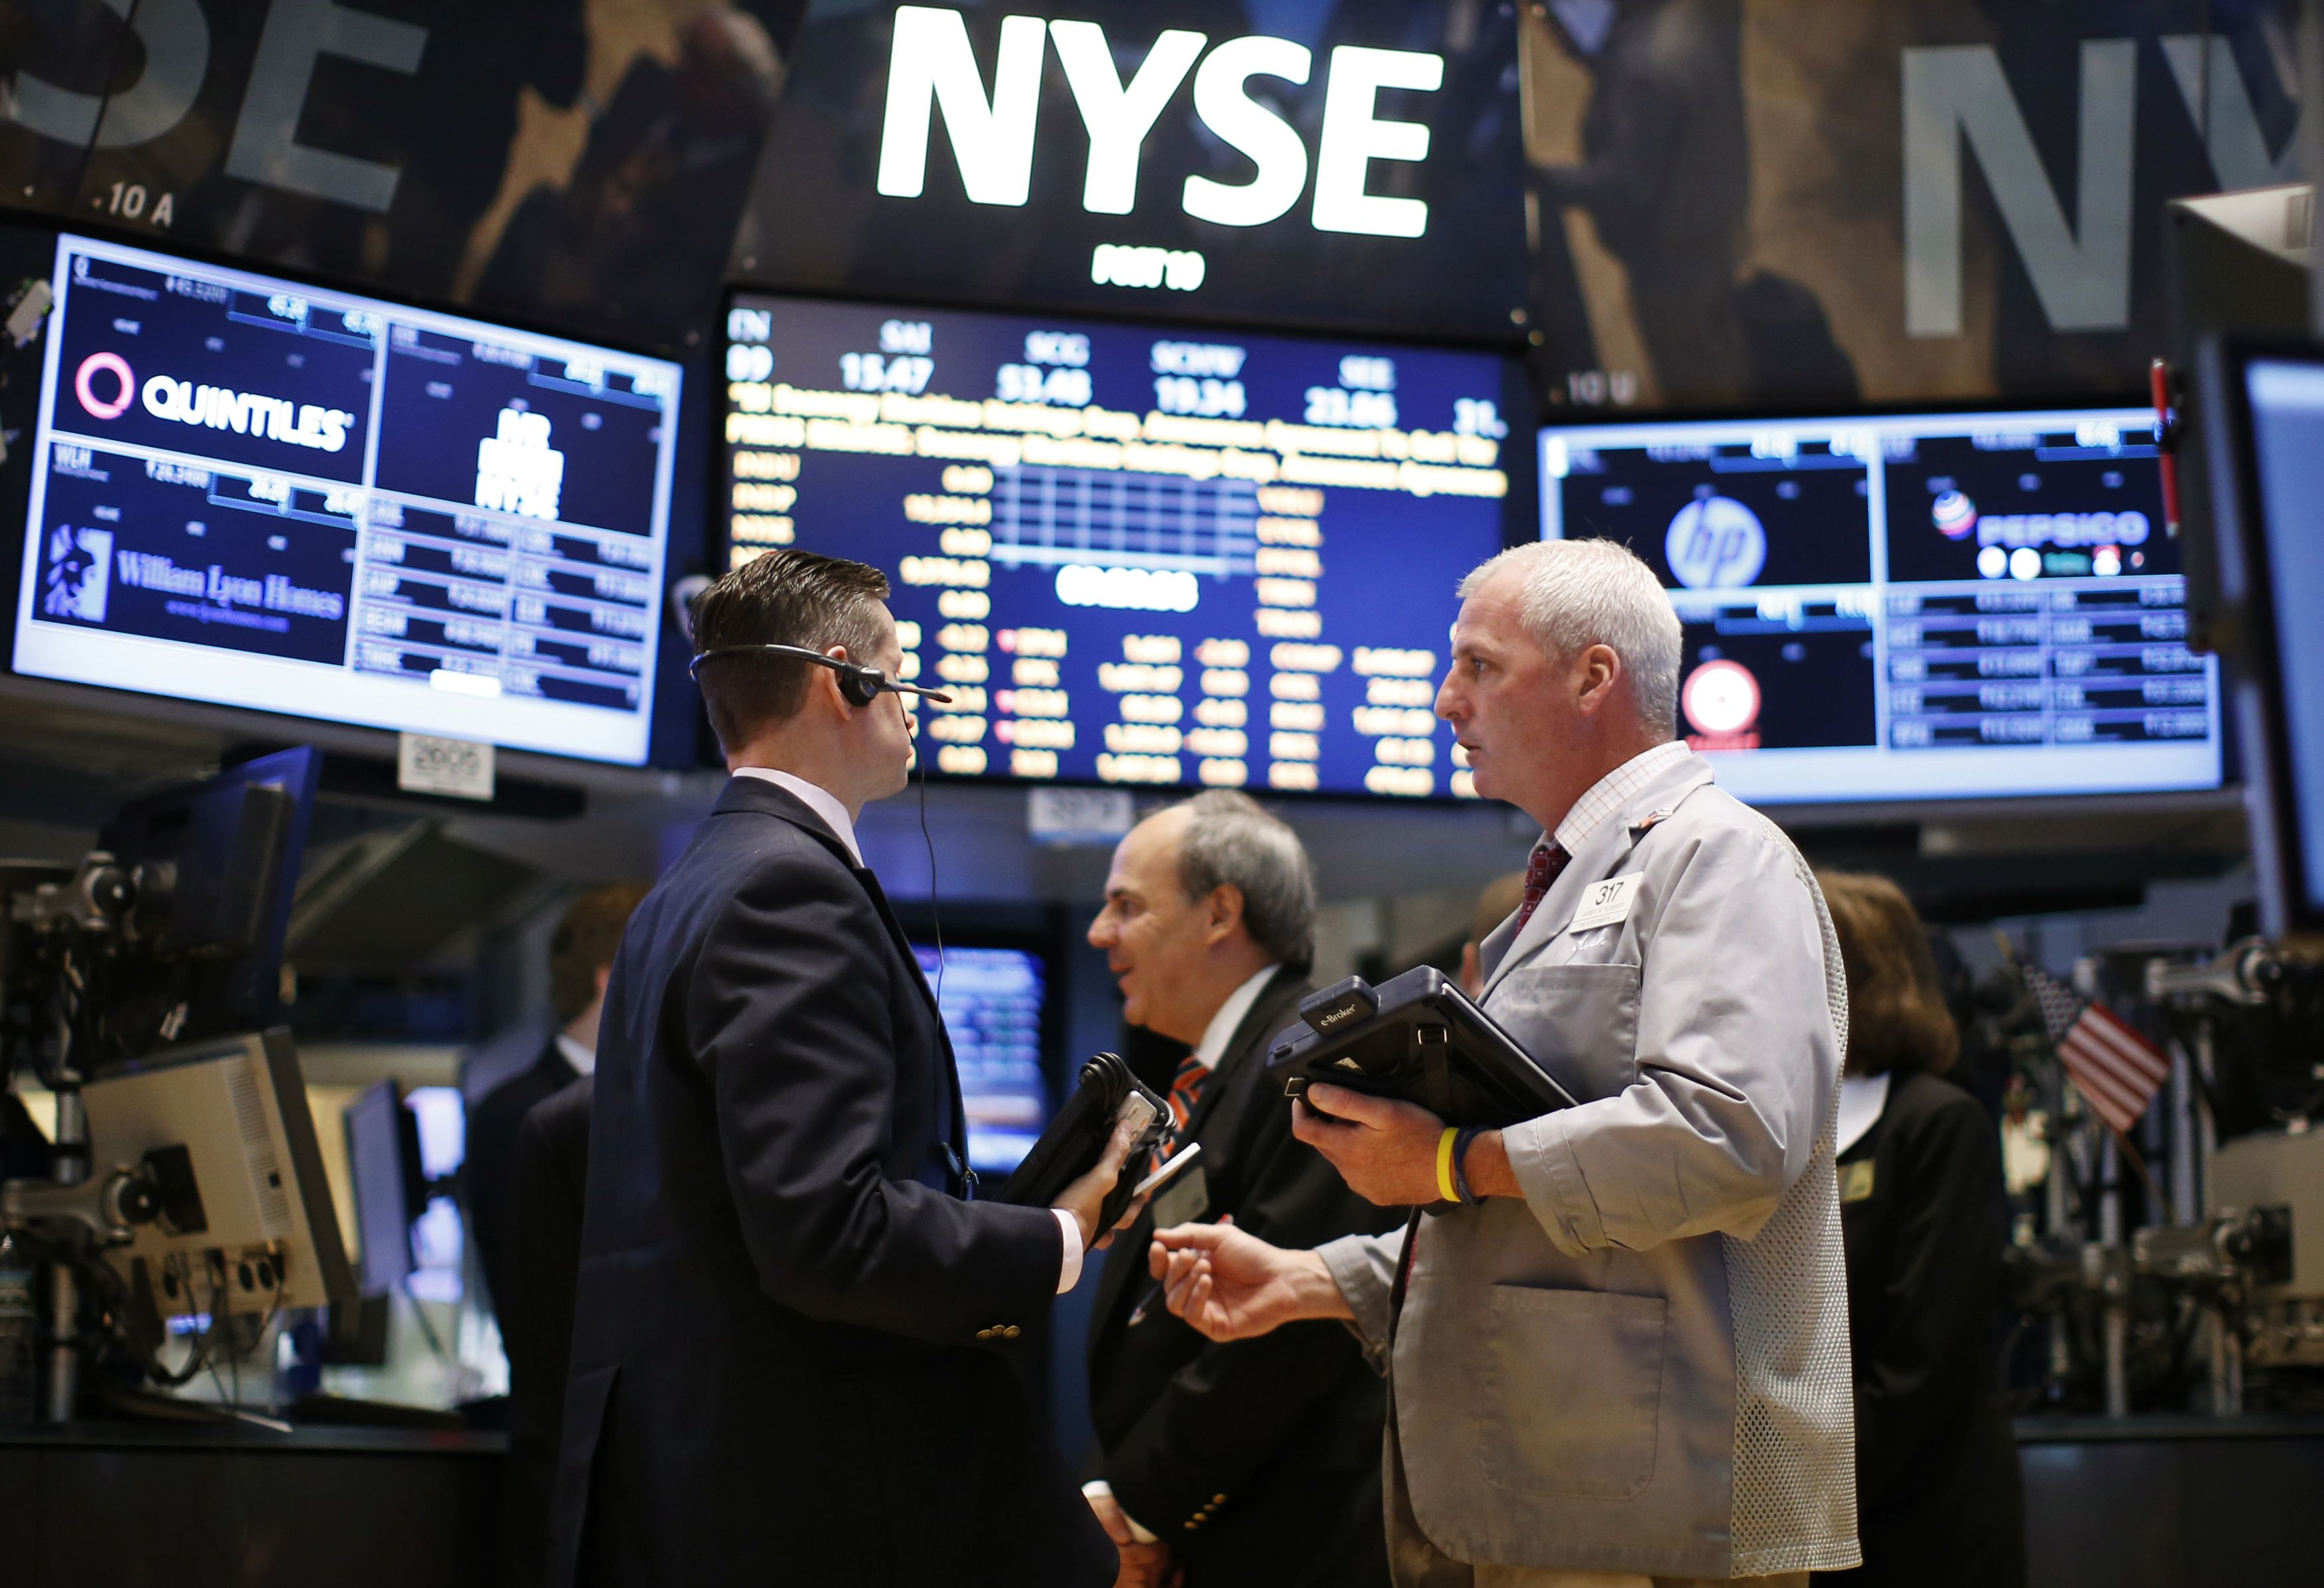 Traders work on the main trading floor of the New York Stock Exchange shortly after the opening bell in New York in this file photo